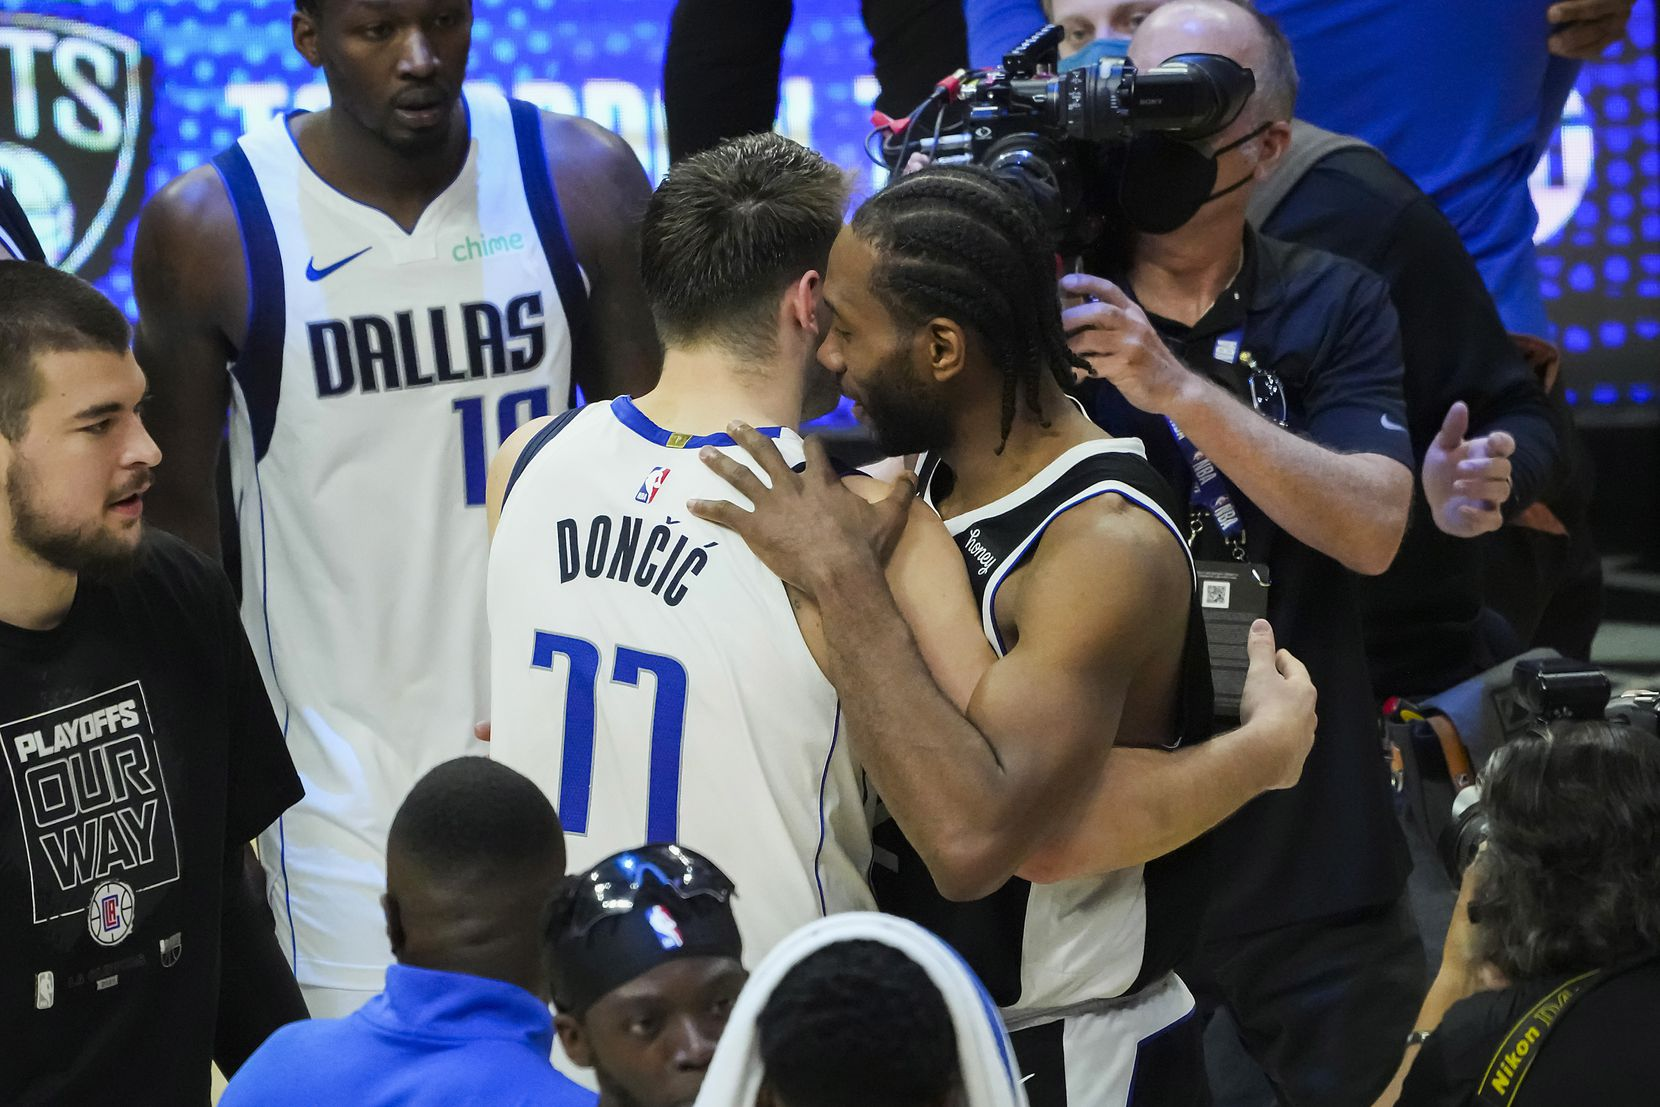 Dallas Mavericks guard Luka Doncic (77) hugs LA Clippers forward Kawhi Leonard after the Clippers victory in Game 7 of an NBA playoff series at the Staples Center on Sunday, June 6, 2021, in Los Angeles.